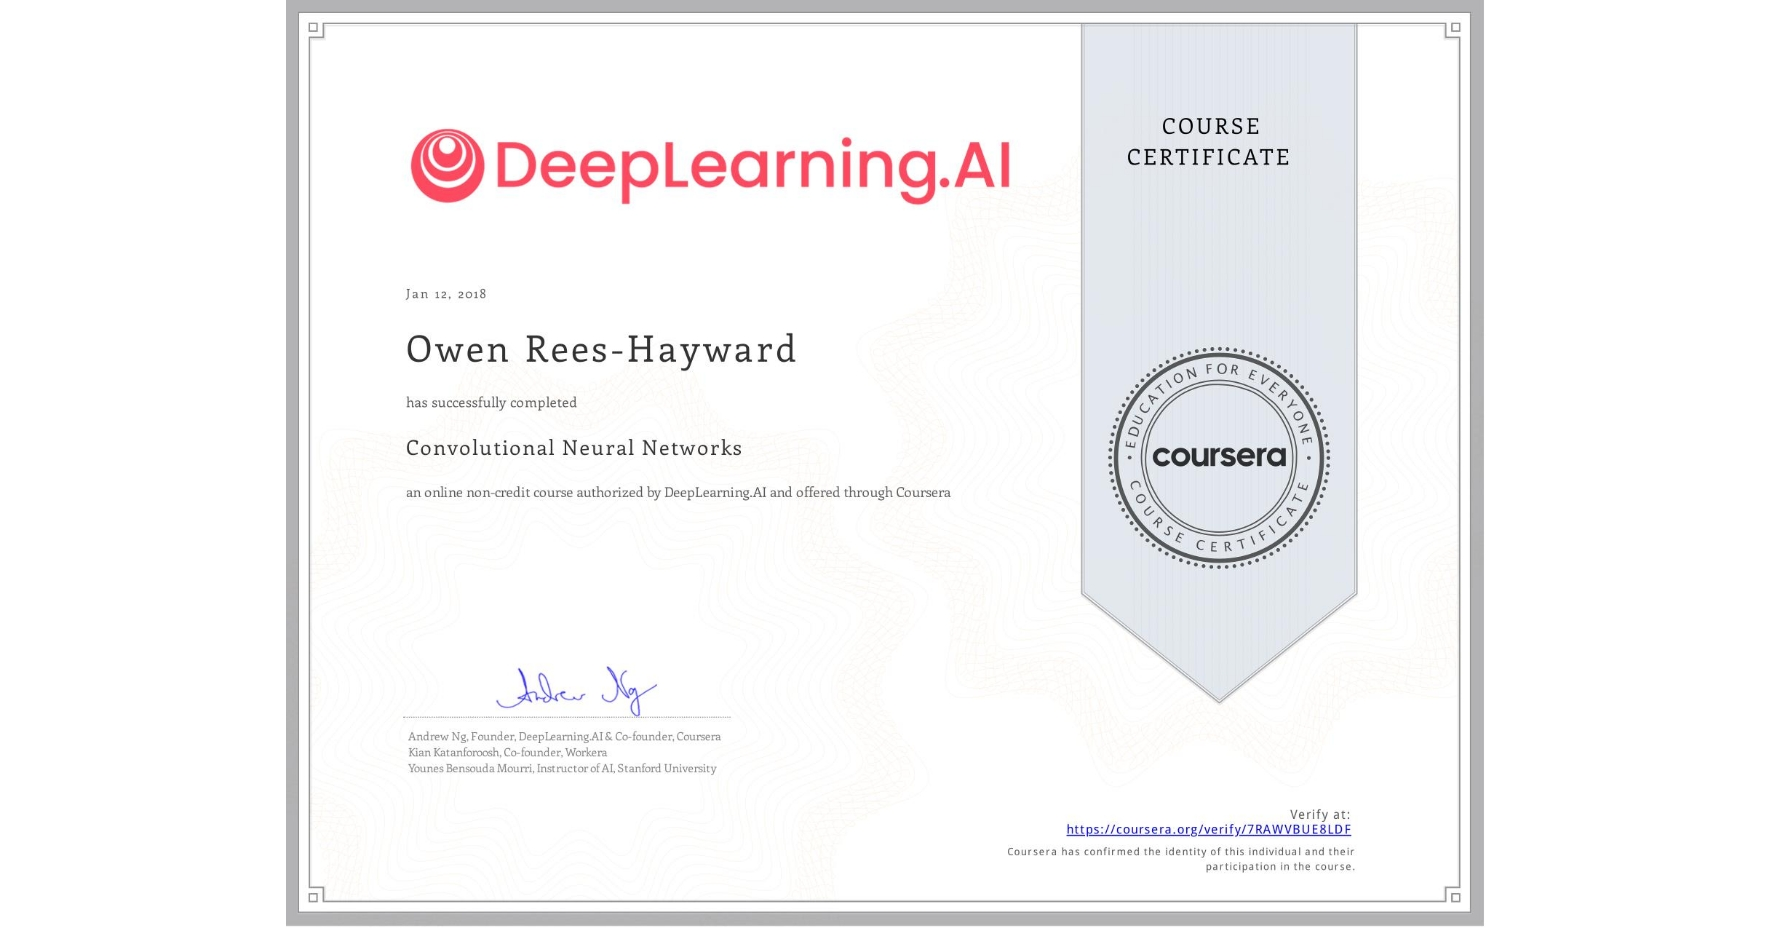 View certificate for Owen Rees-Hayward, Convolutional Neural Networks, an online non-credit course authorized by DeepLearning.AI and offered through Coursera